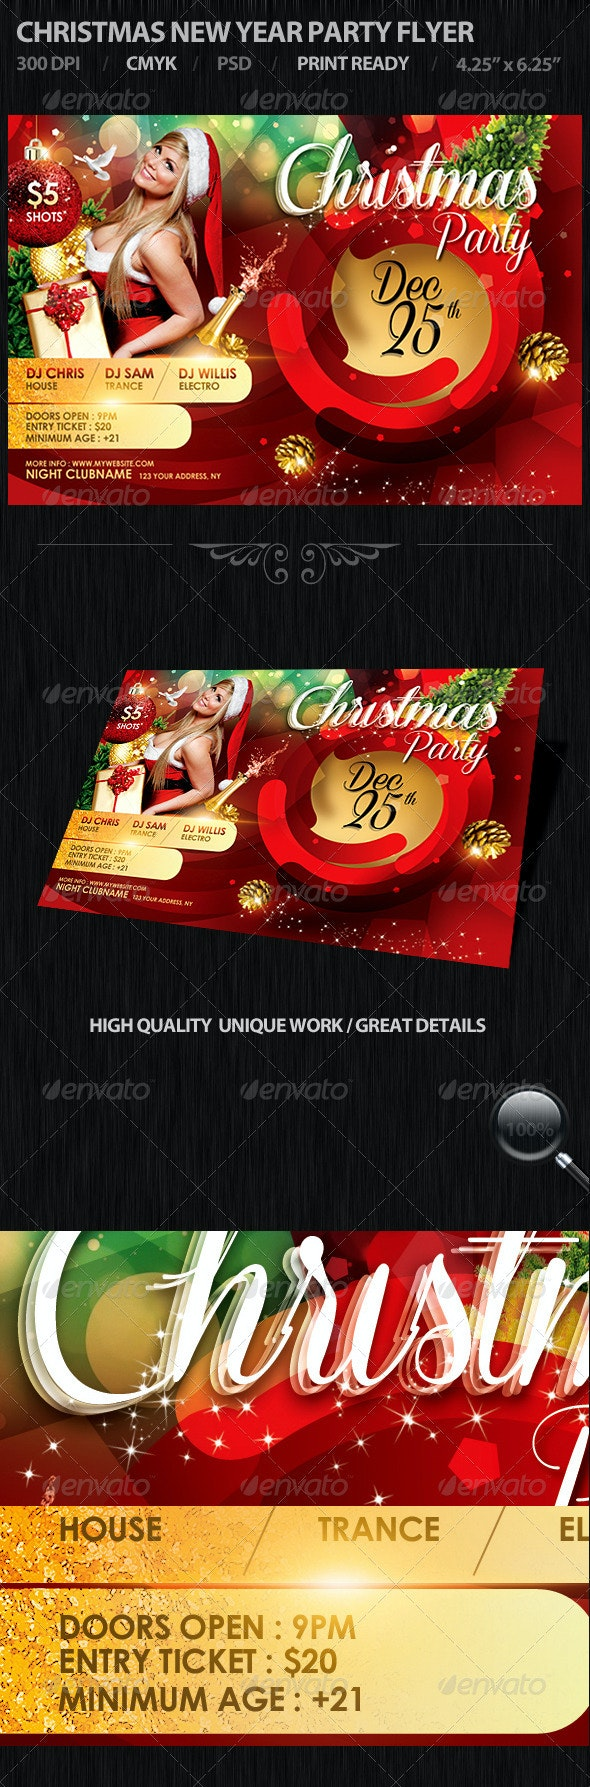 Christmas New Year Party Flyer - Holidays Events